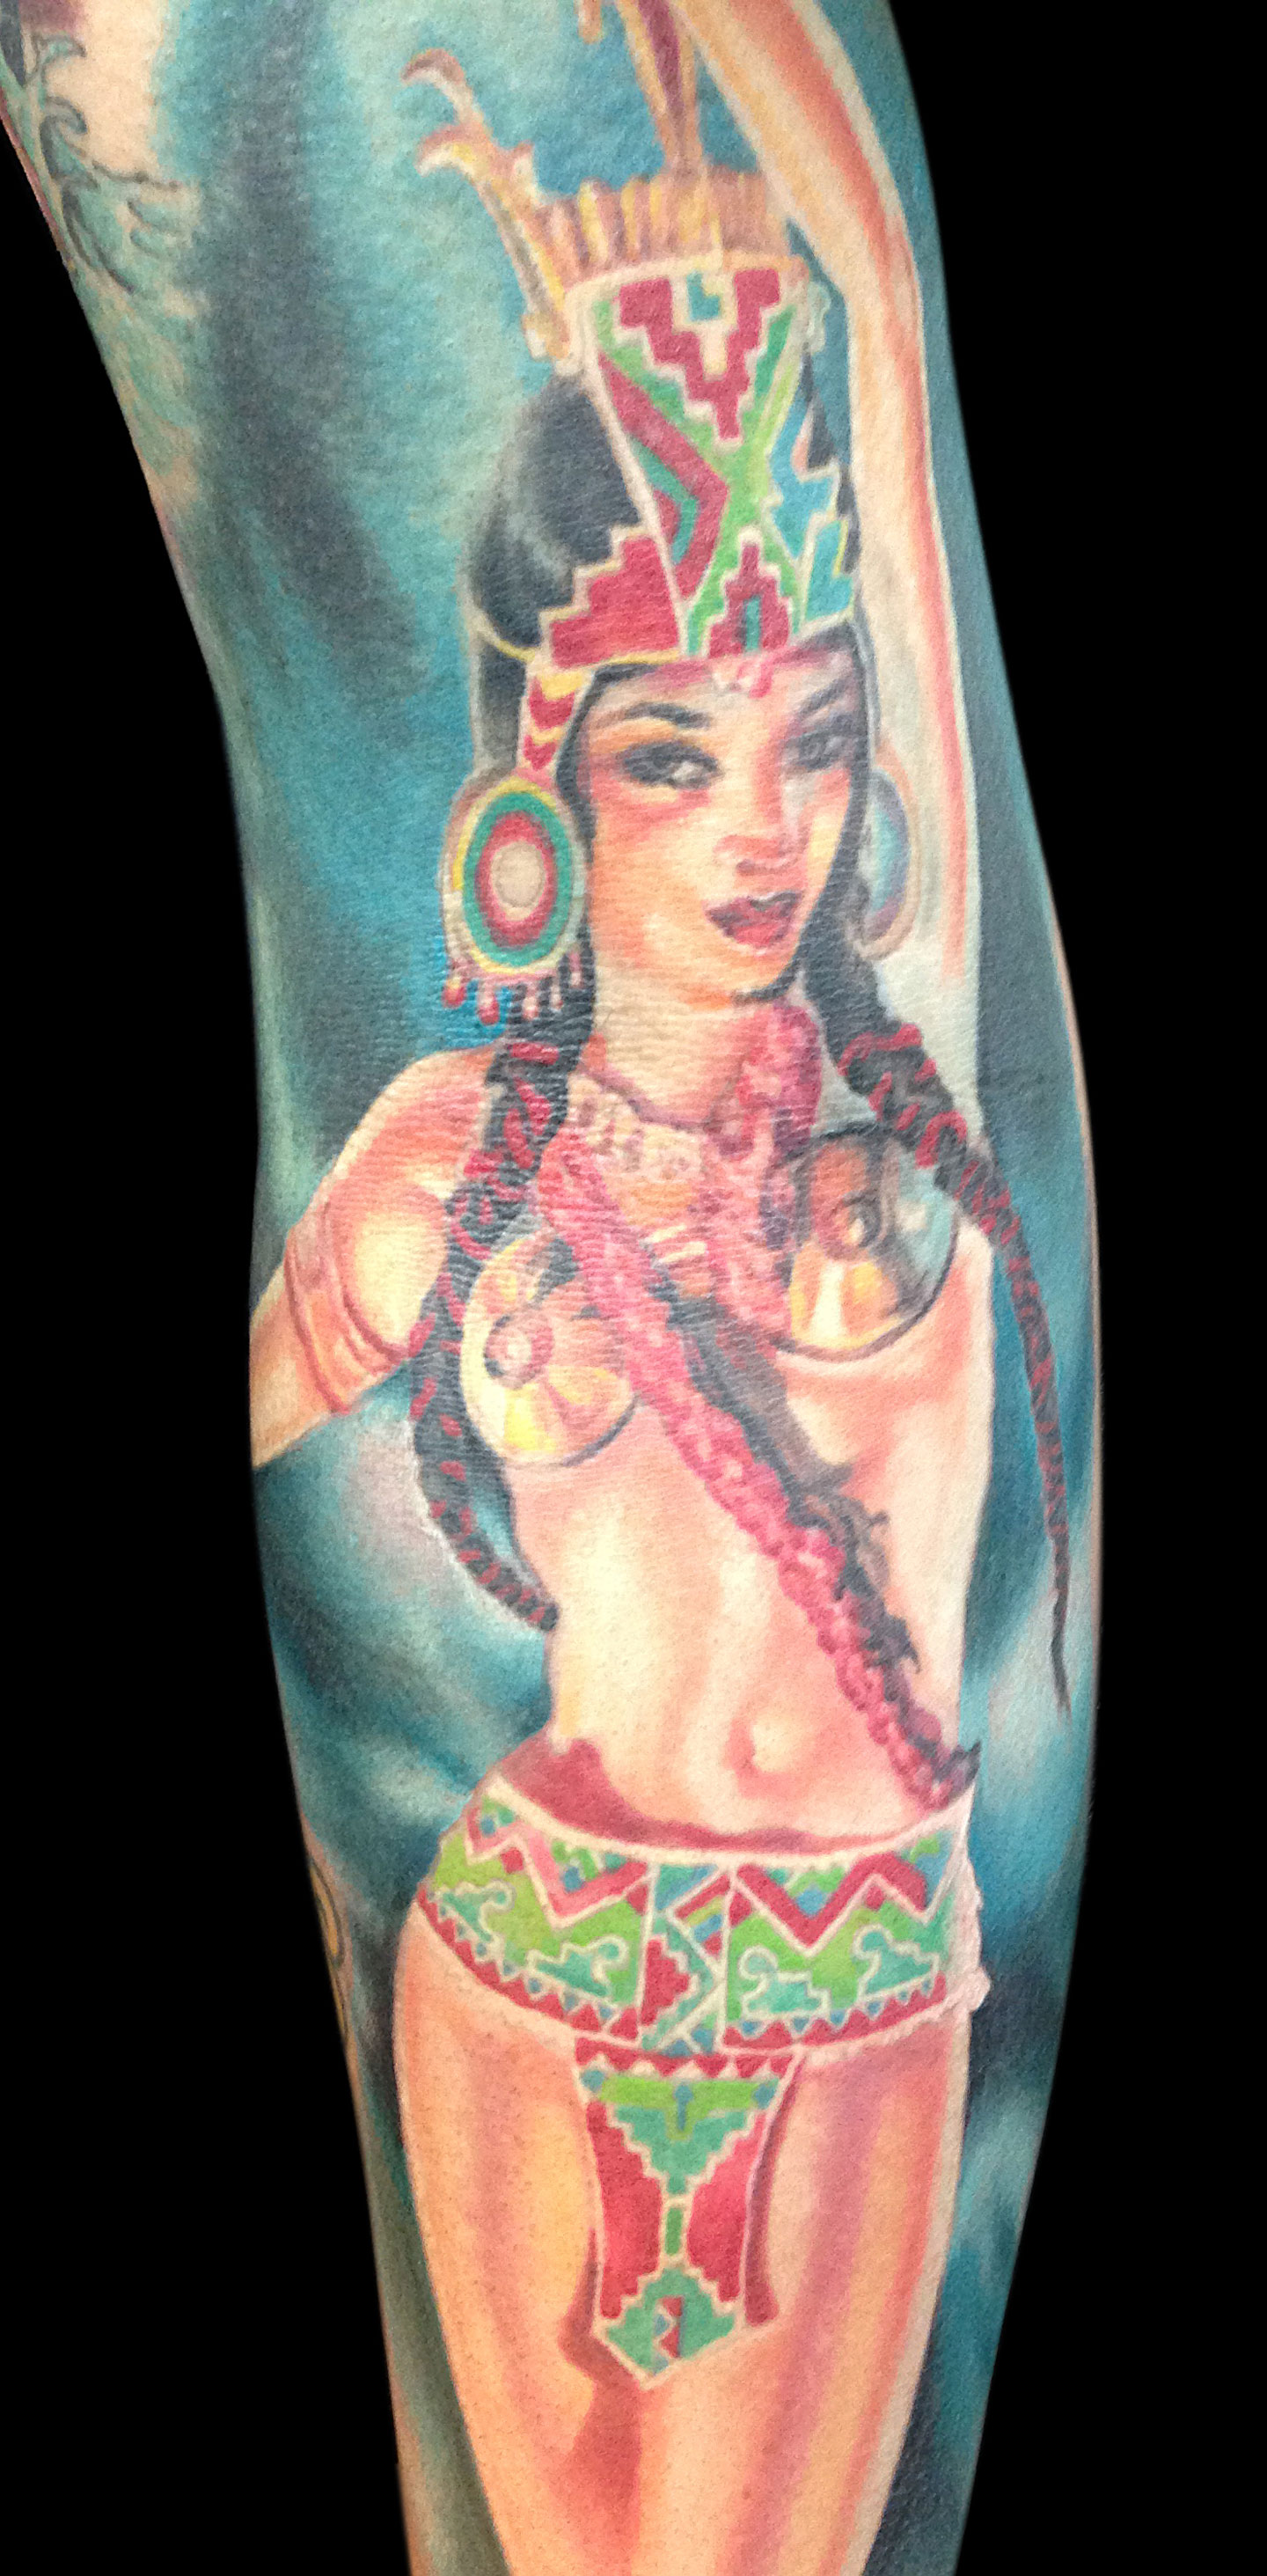 Aztec Fire Goddess Color Pin Up Tattoo on Gloria Conners, (entire tattoo and figure is 3 years healed in this photo, except for a small portion of the turquoise background on the bottom is fresh) detail zoom